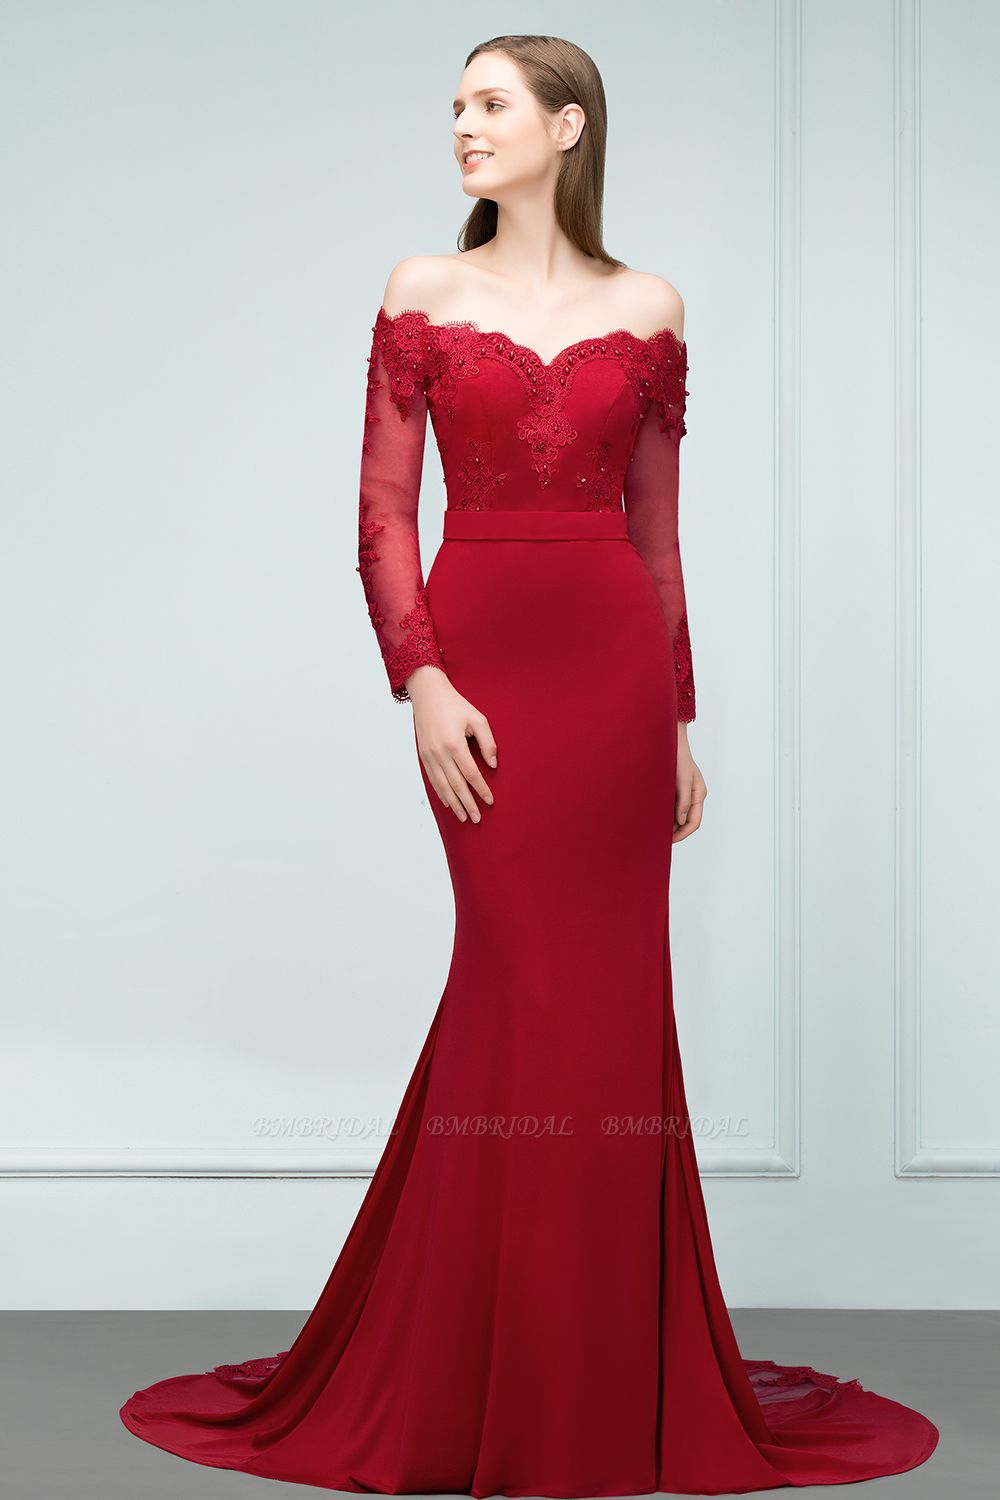 Glamorous Long Sleeve Mermaid Evening Prom Dress With Lace Appliques Online